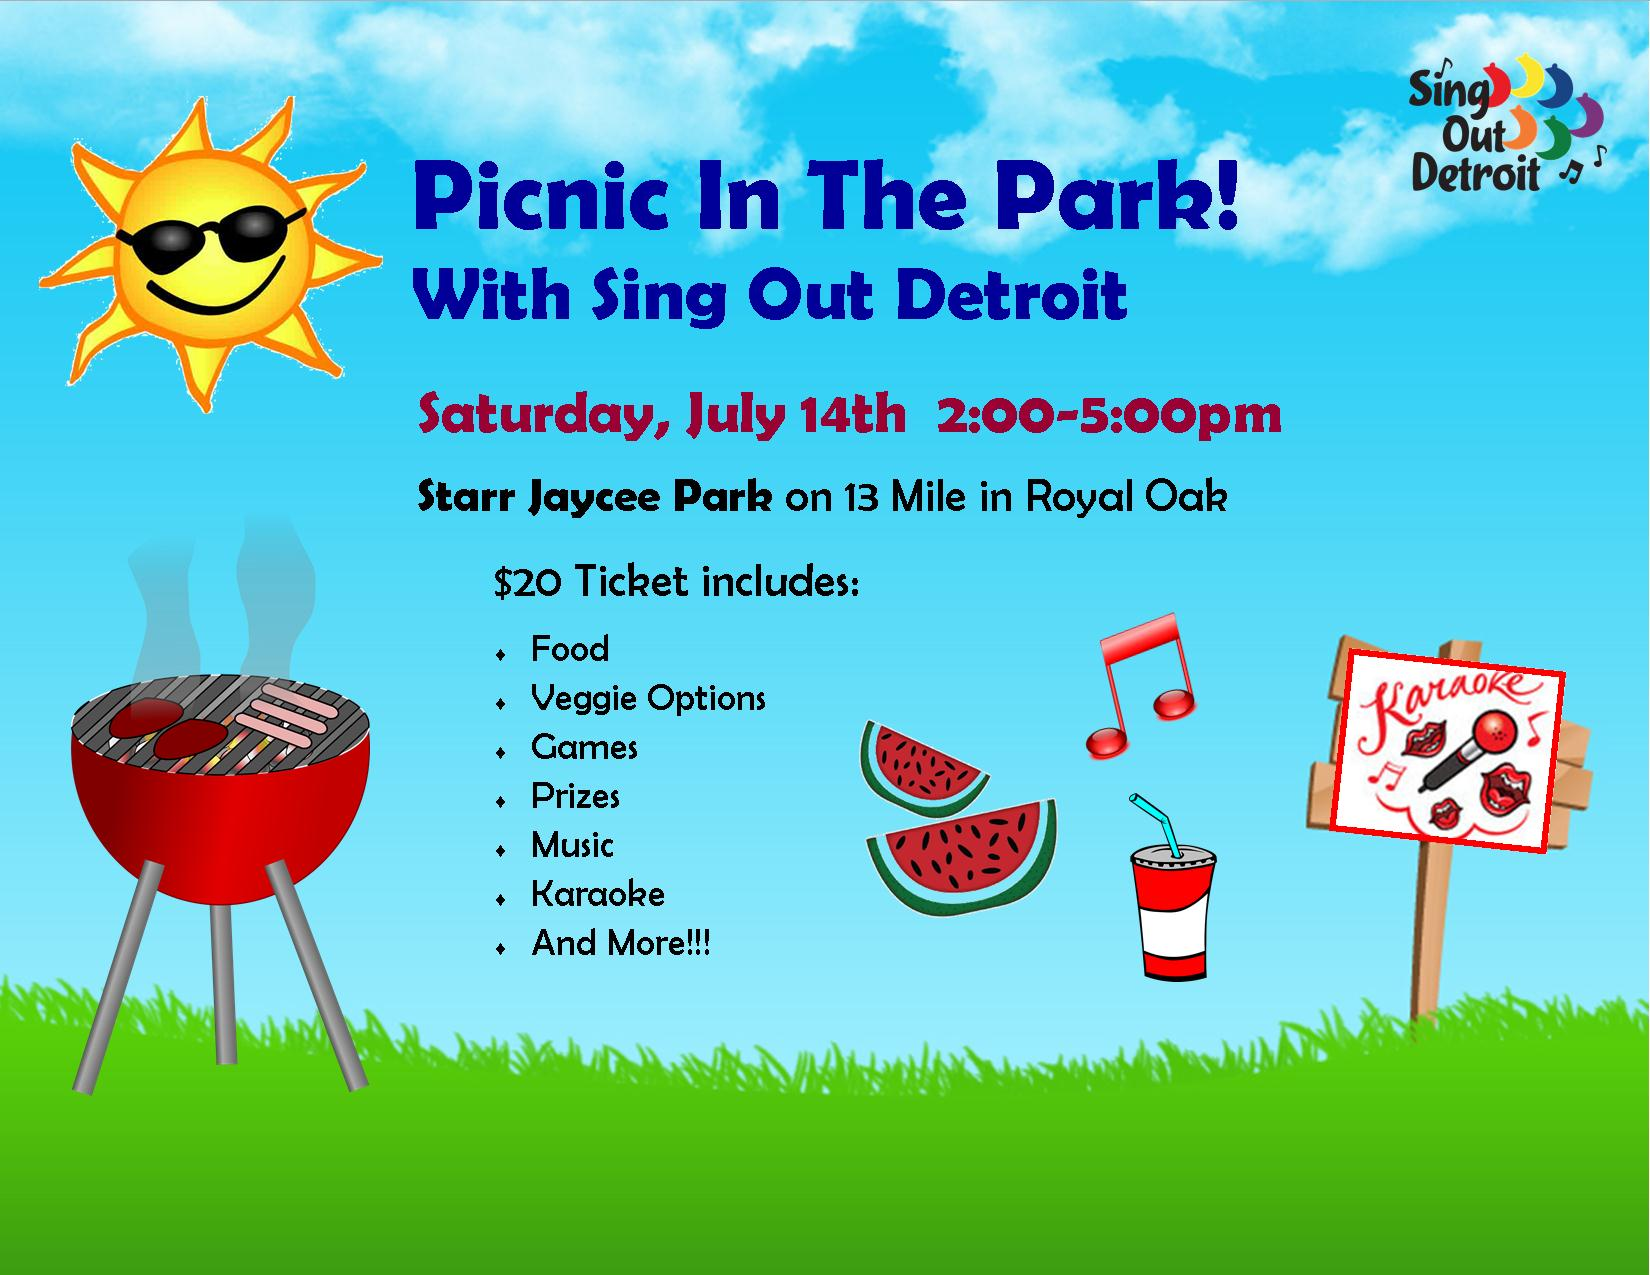 Picnic In The Park! With Sing Out Detroit – Sing Out Detroit